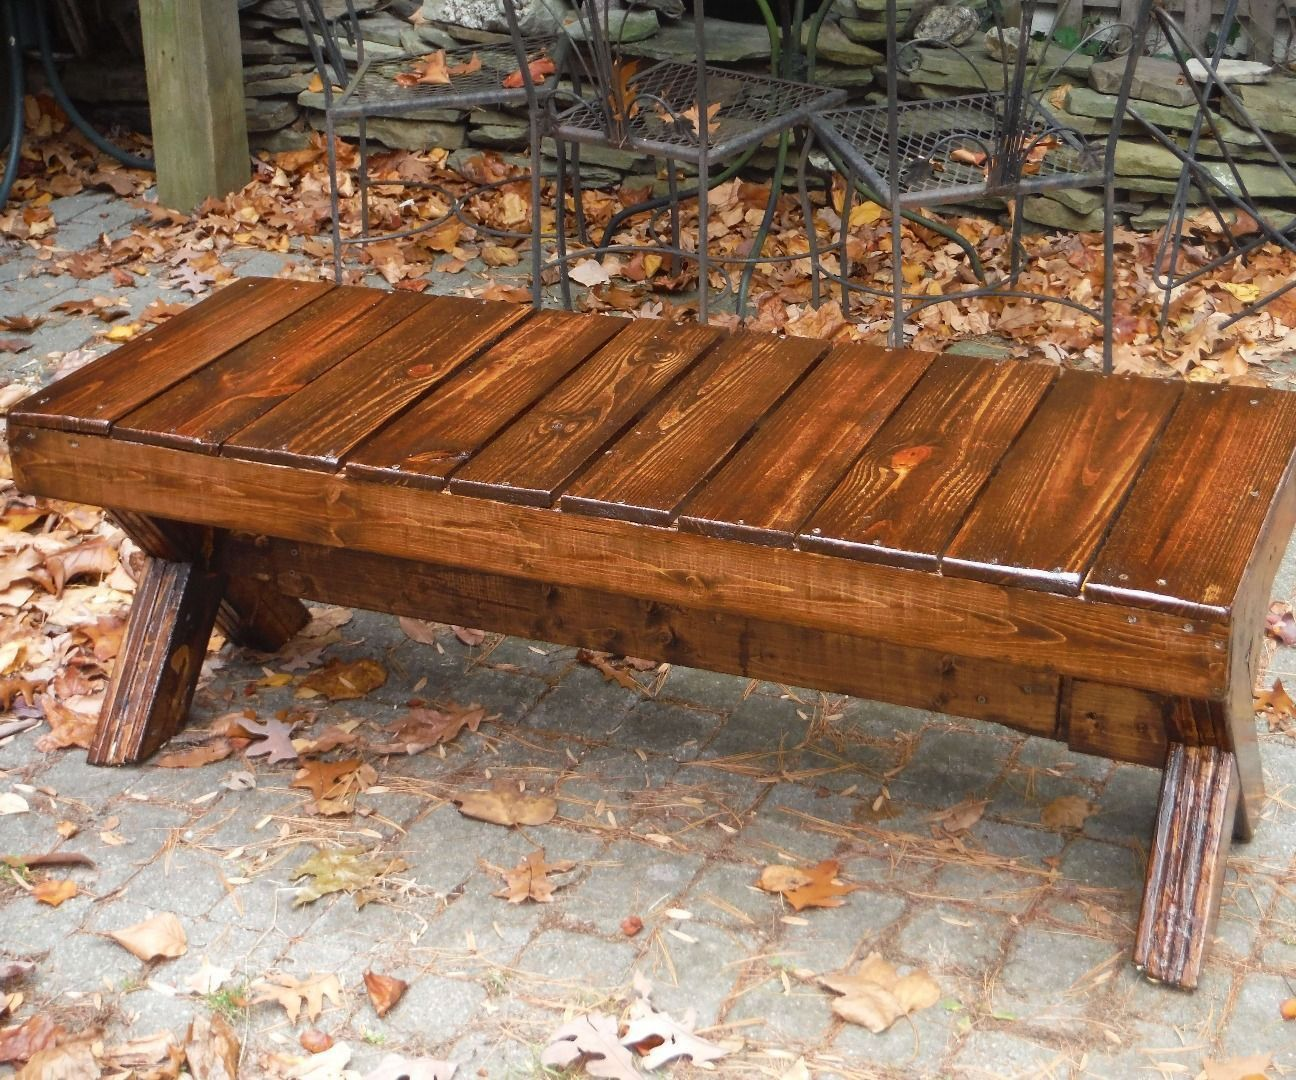 Admirable Luxury Built In Deck Benches Built In Deck Benches Cool Wood Picnic Bench 30 Lumber 15 Finish